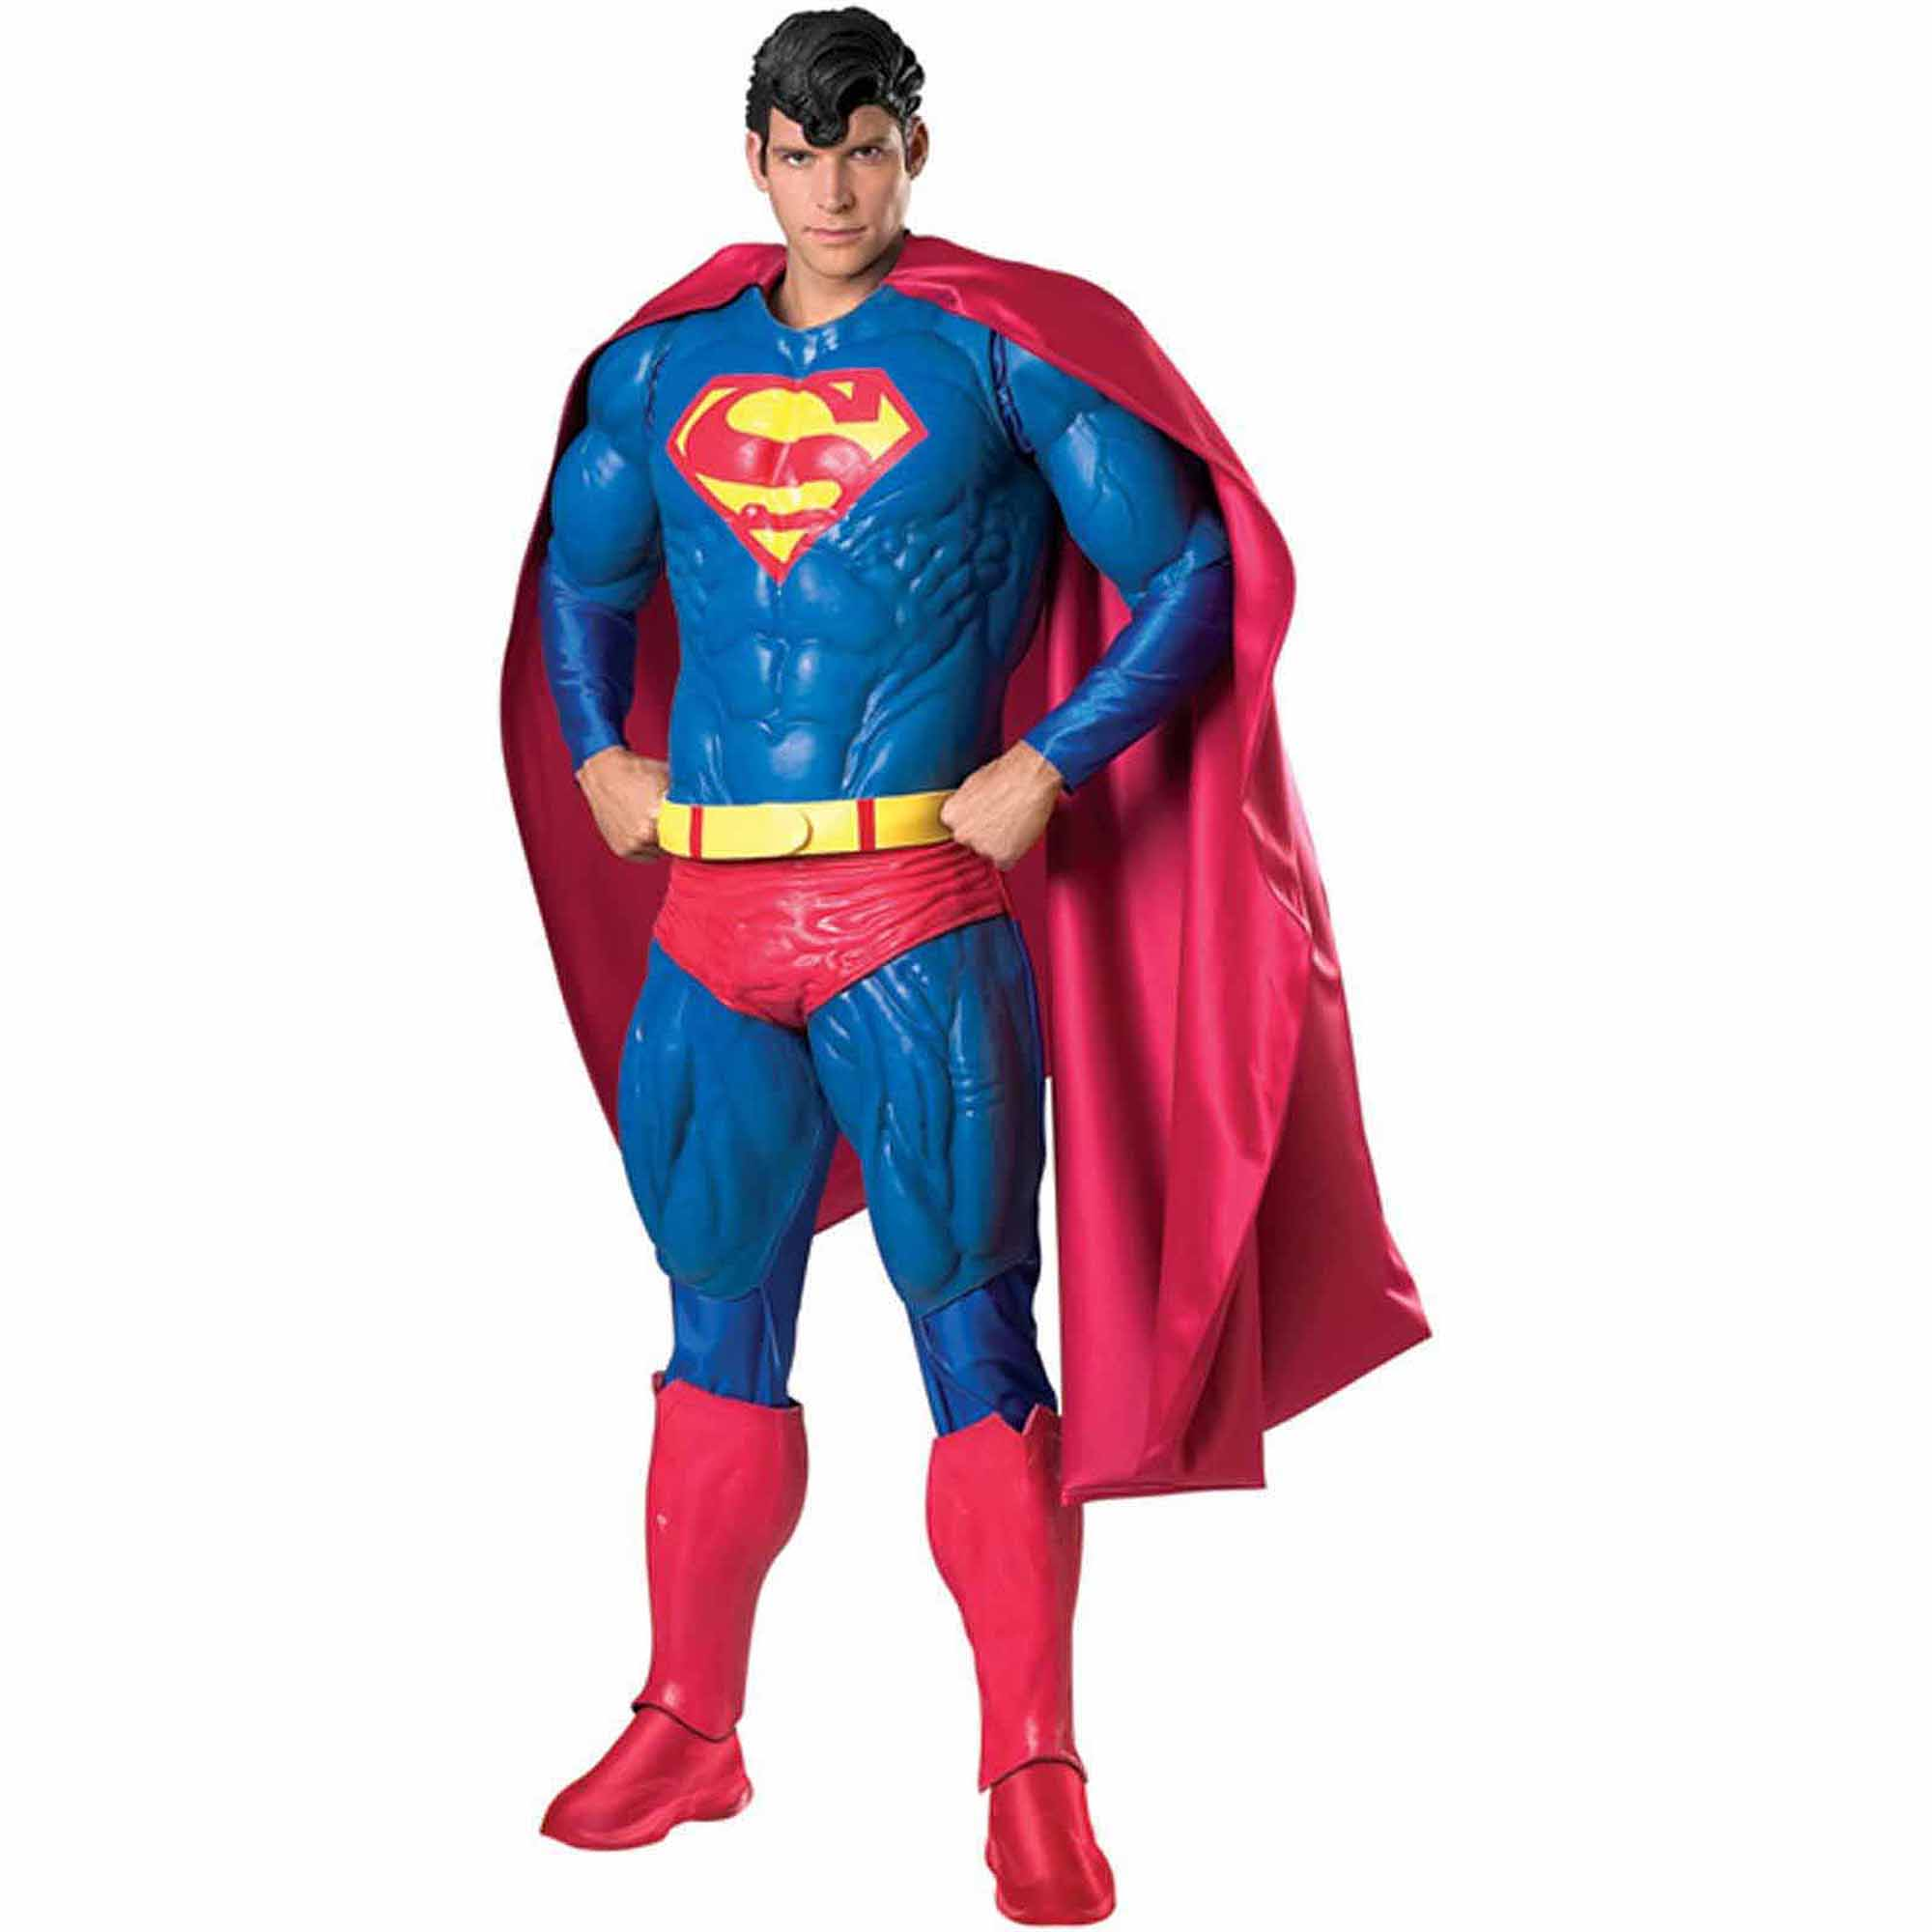 Collector's Edition Superman Adult Halloween Costume